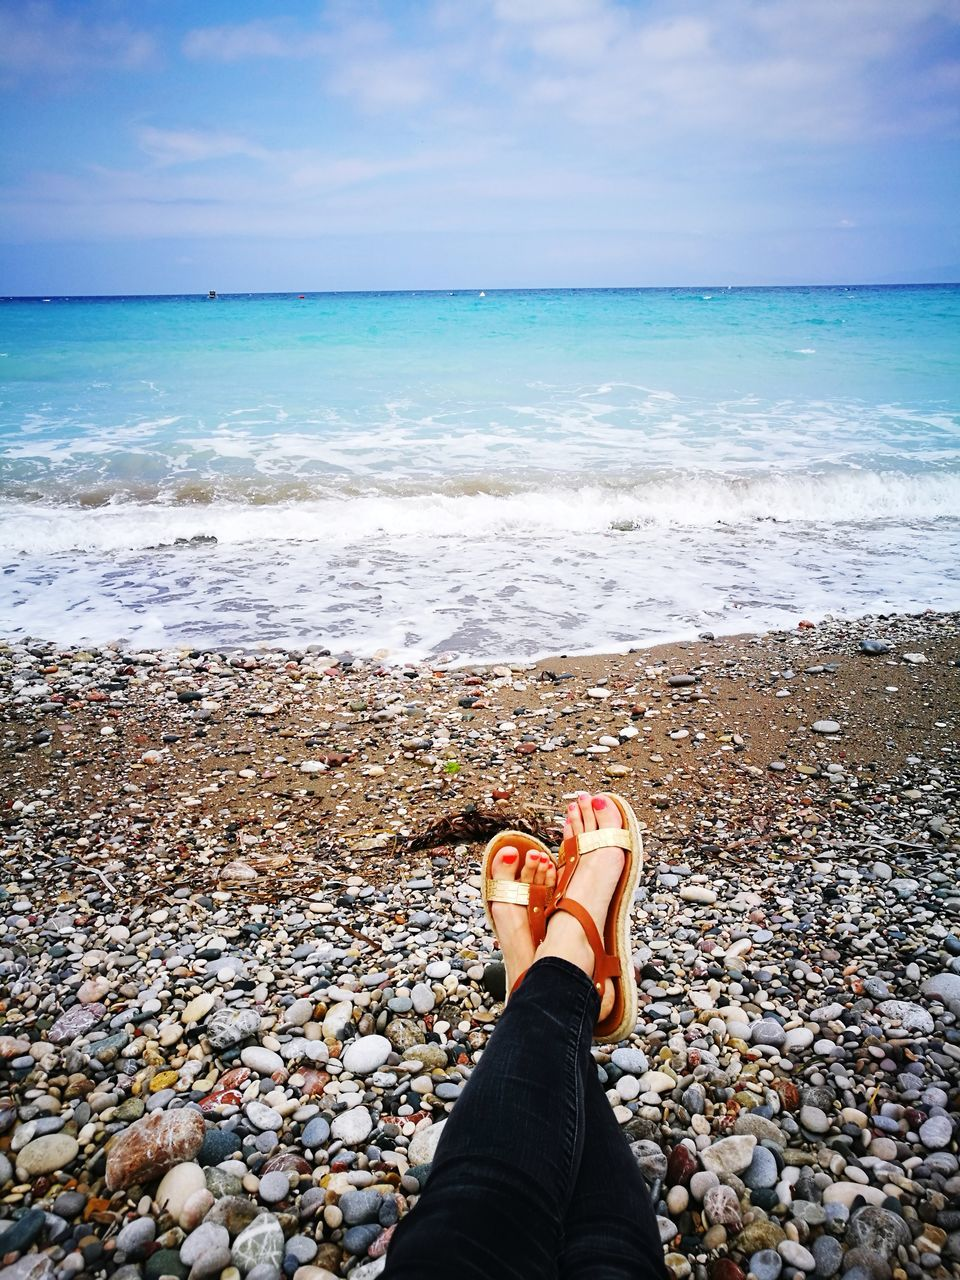 sea, beach, one person, horizon over water, water, human leg, low section, real people, shore, personal perspective, human body part, sky, day, nature, standing, women, beauty in nature, outdoors, pebble, lifestyles, scenics, wave, pebble beach, adult, people